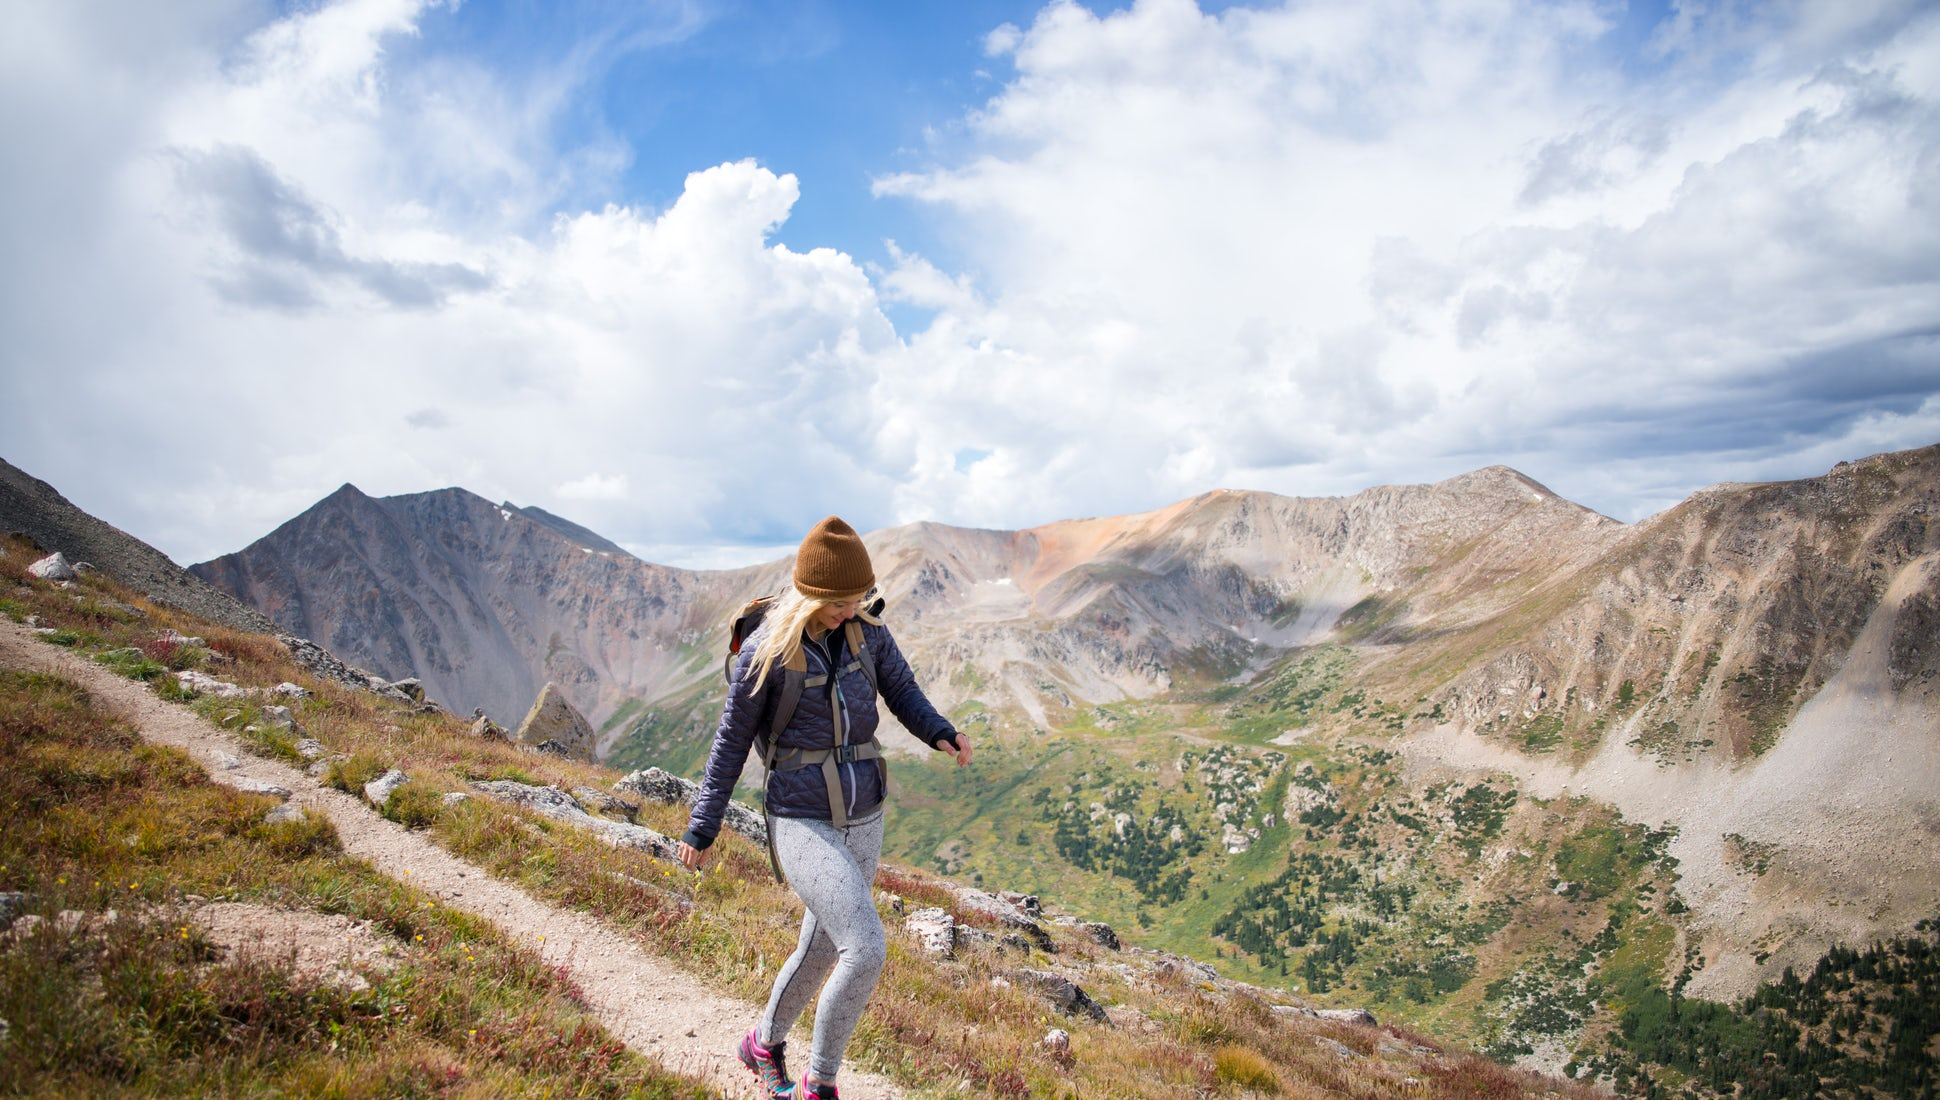 The 10 Best Hikes In Colorado San Juan Mountains World Map on pikes peak map, uncompahgre river map, uncompahgre plateau map, los pinos river map, san juan river map, usa map, la plata county map, san juan islands map, animas river map, sierra madre oriental map, great sandy desert map, old san juan map, wasatch range map, rio grande map, dolores river map, great plains map, mount elbert map, silverton map, san juan county map, front range map,